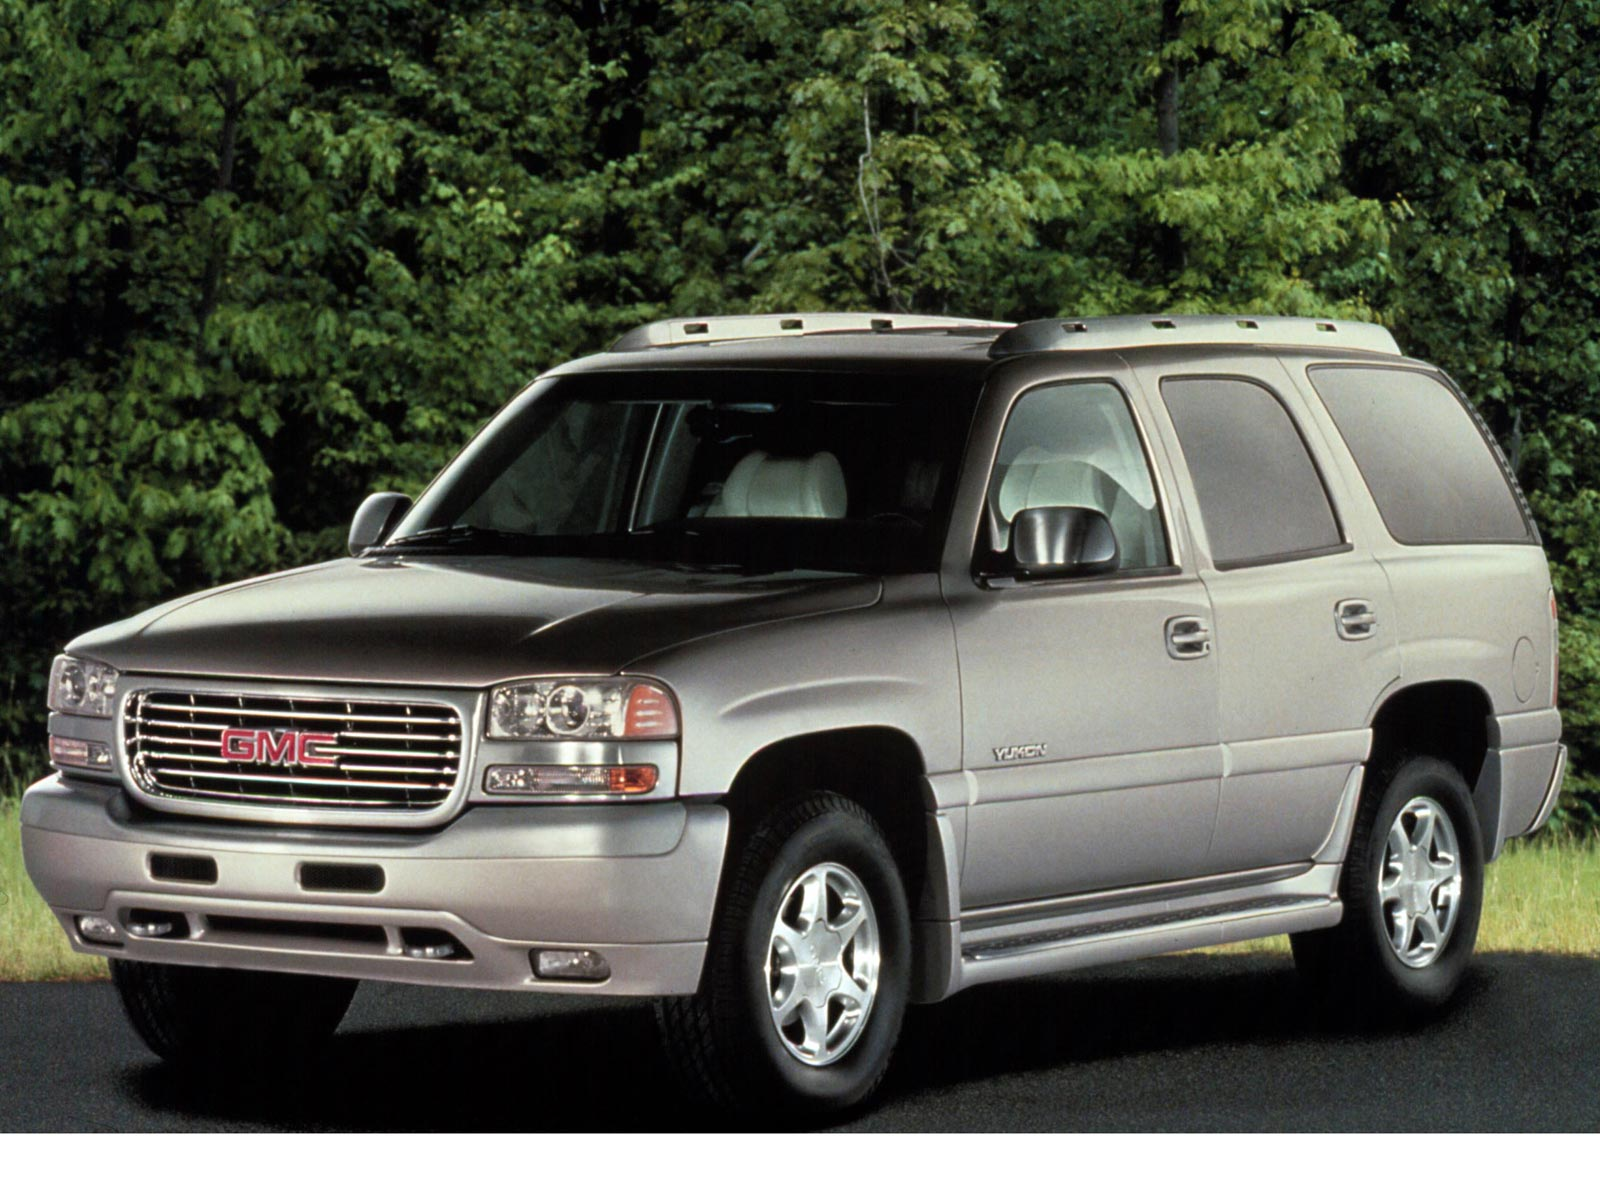 Yukon moreover Chevrolet Tahoe besides X Ct Sl together with Gmc Sierra K Lifted Pick Up For Sale X besides Gmc Sierra Rear View  parison. on 2008 gmc denali pick up